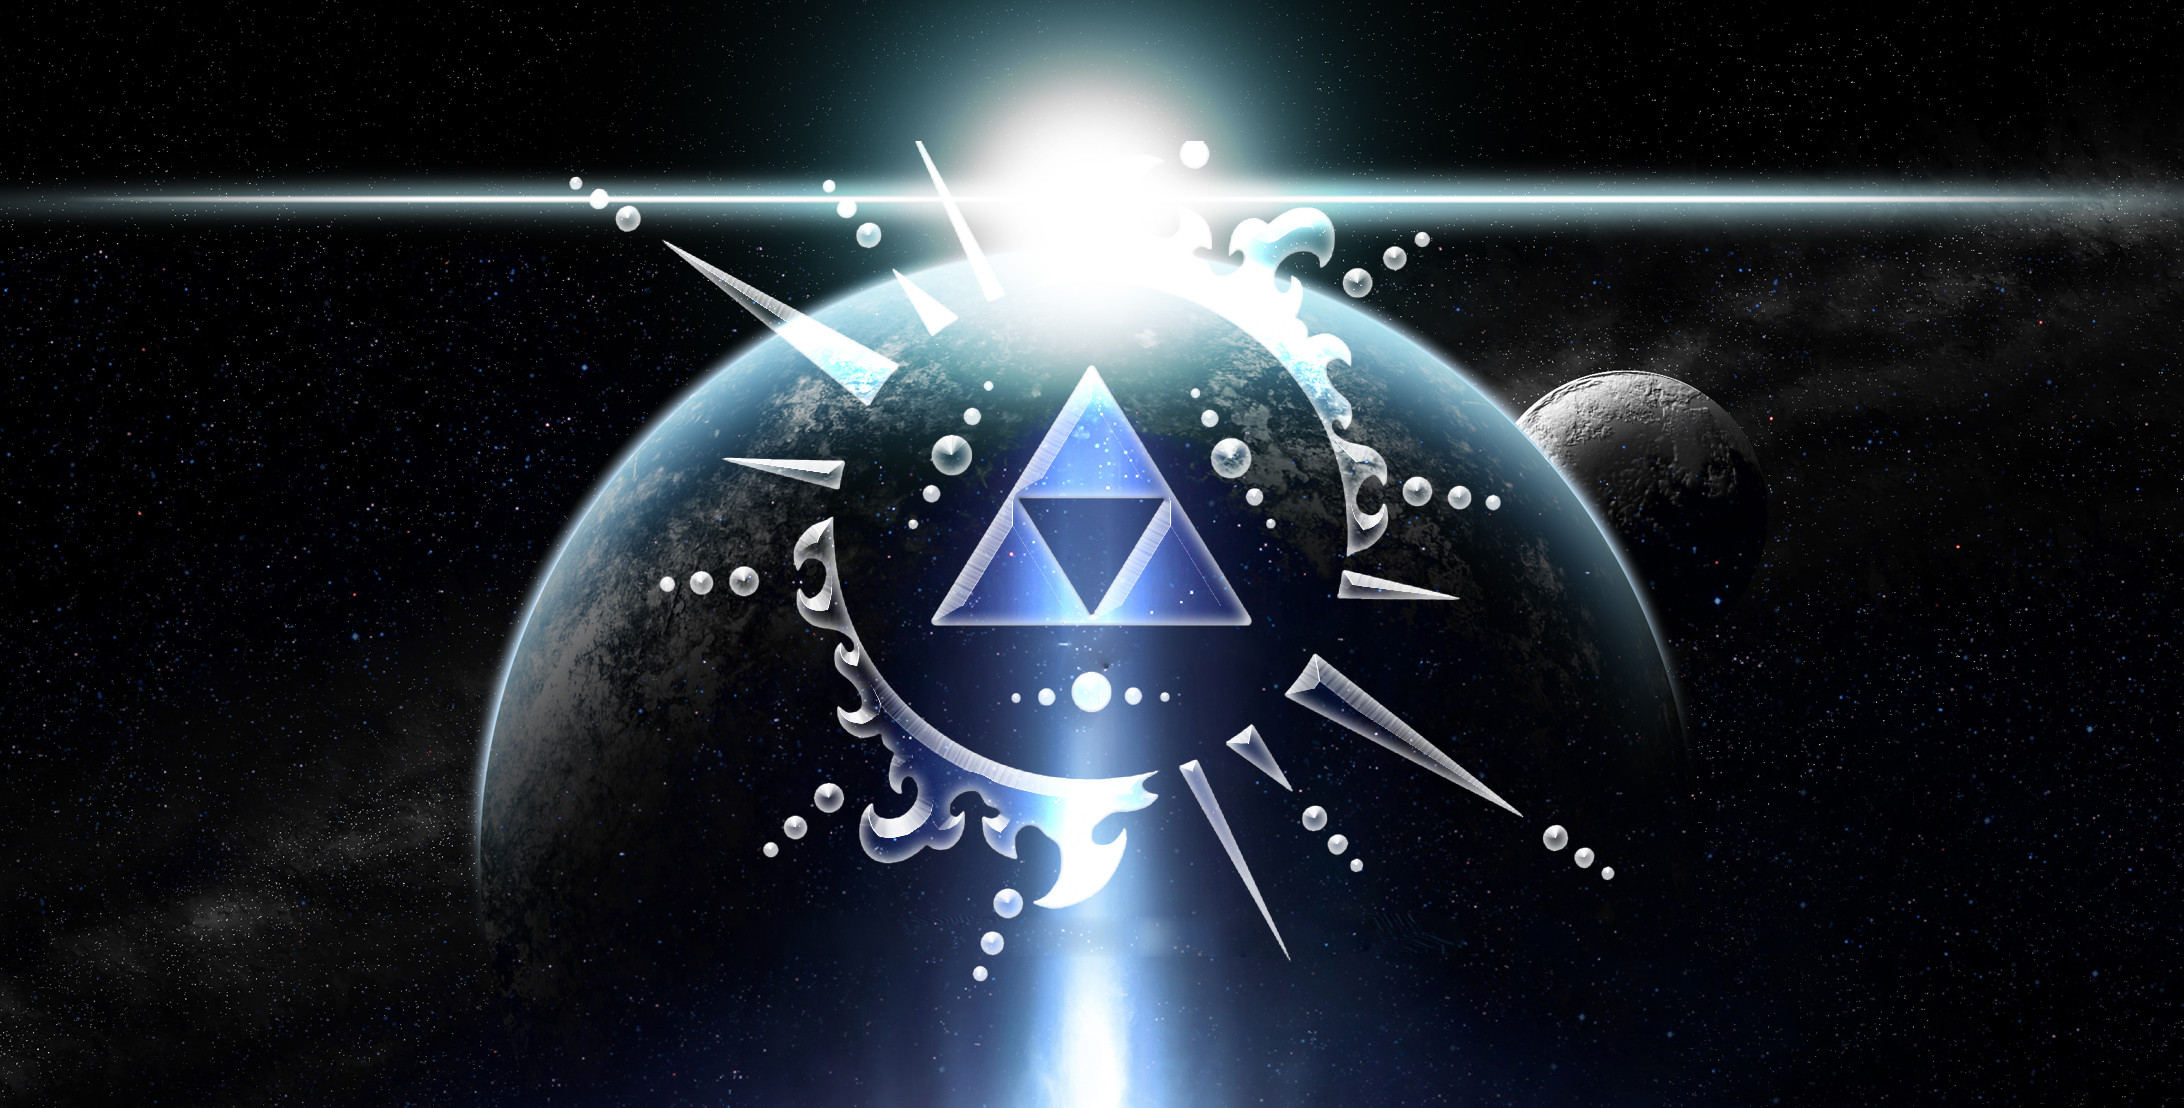 2184x1108 ...  Triforce Wallpaper by Tahu1179 on DeviantA